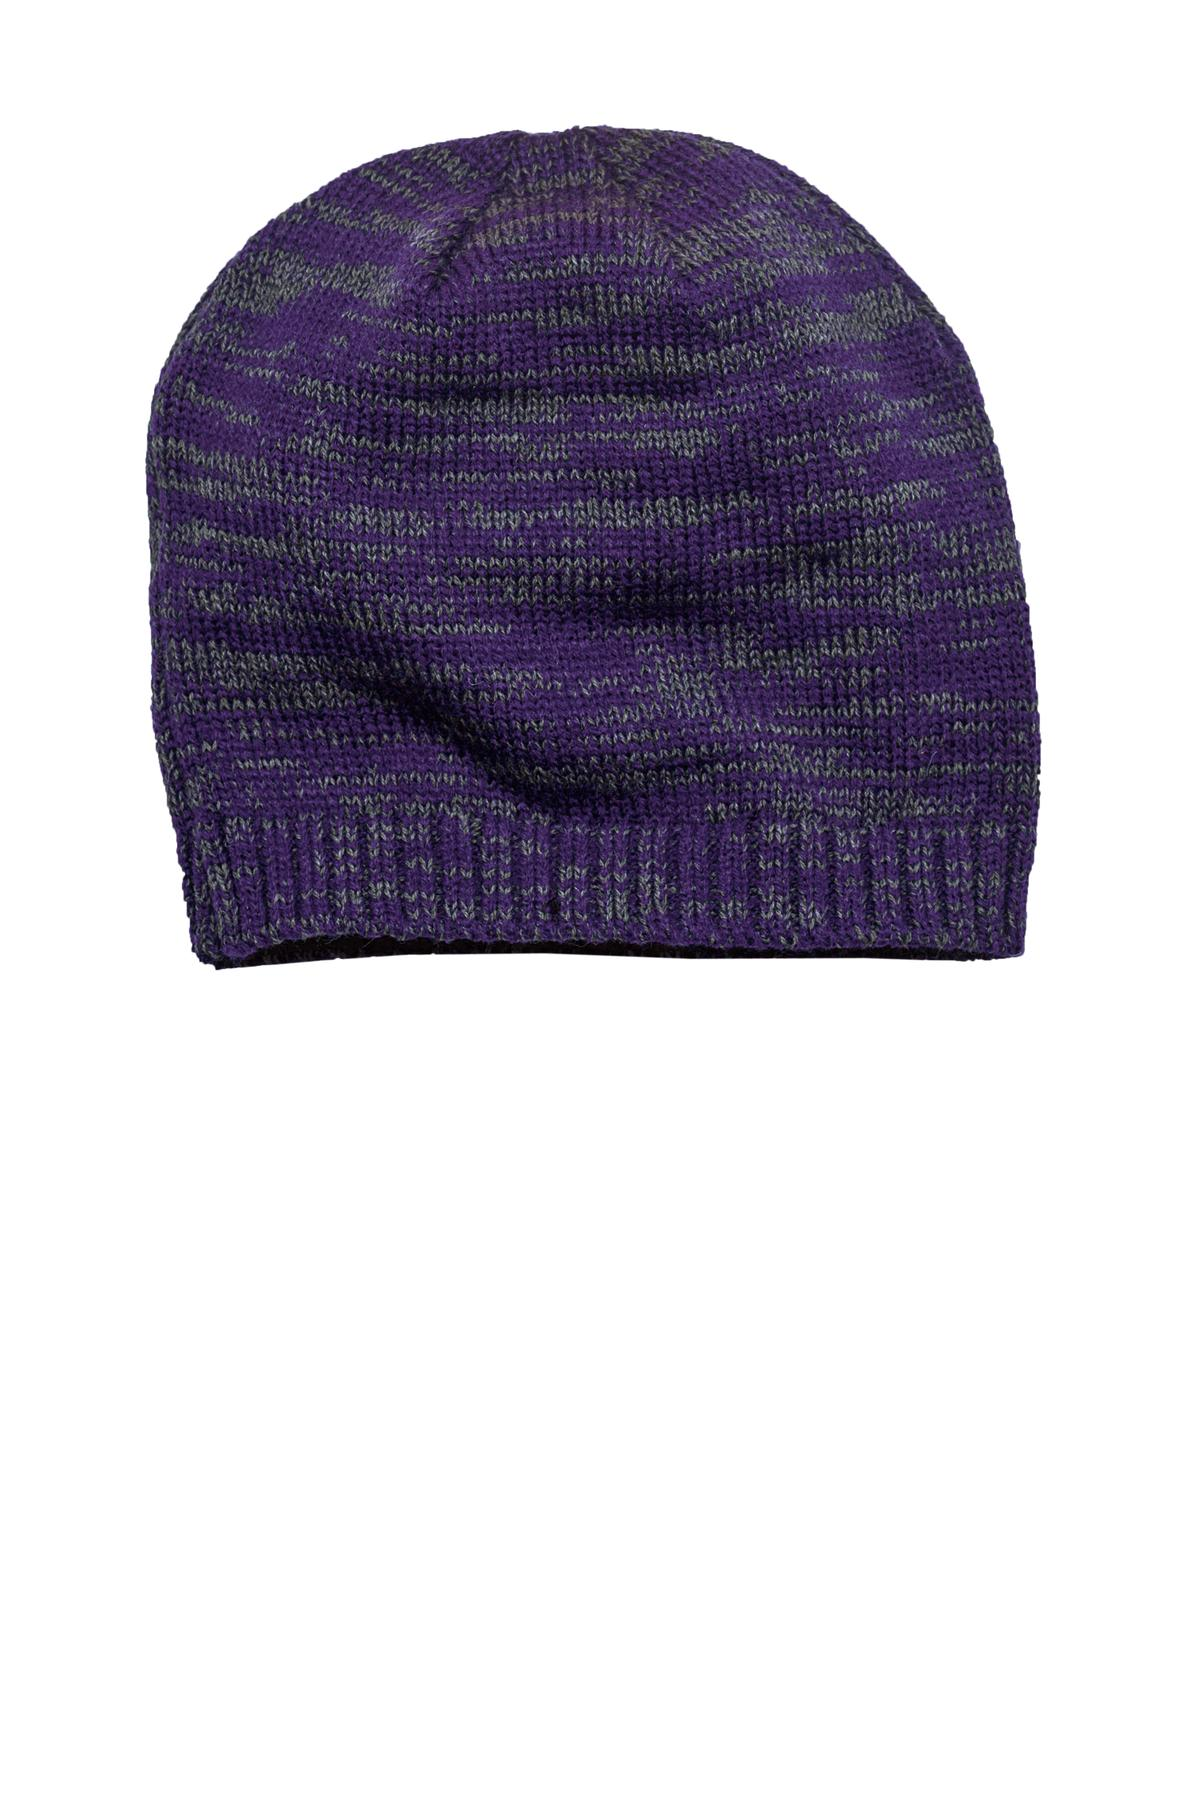 District ®  Spaced-Dyed Beanie DT620 - Purple/ Charcoal